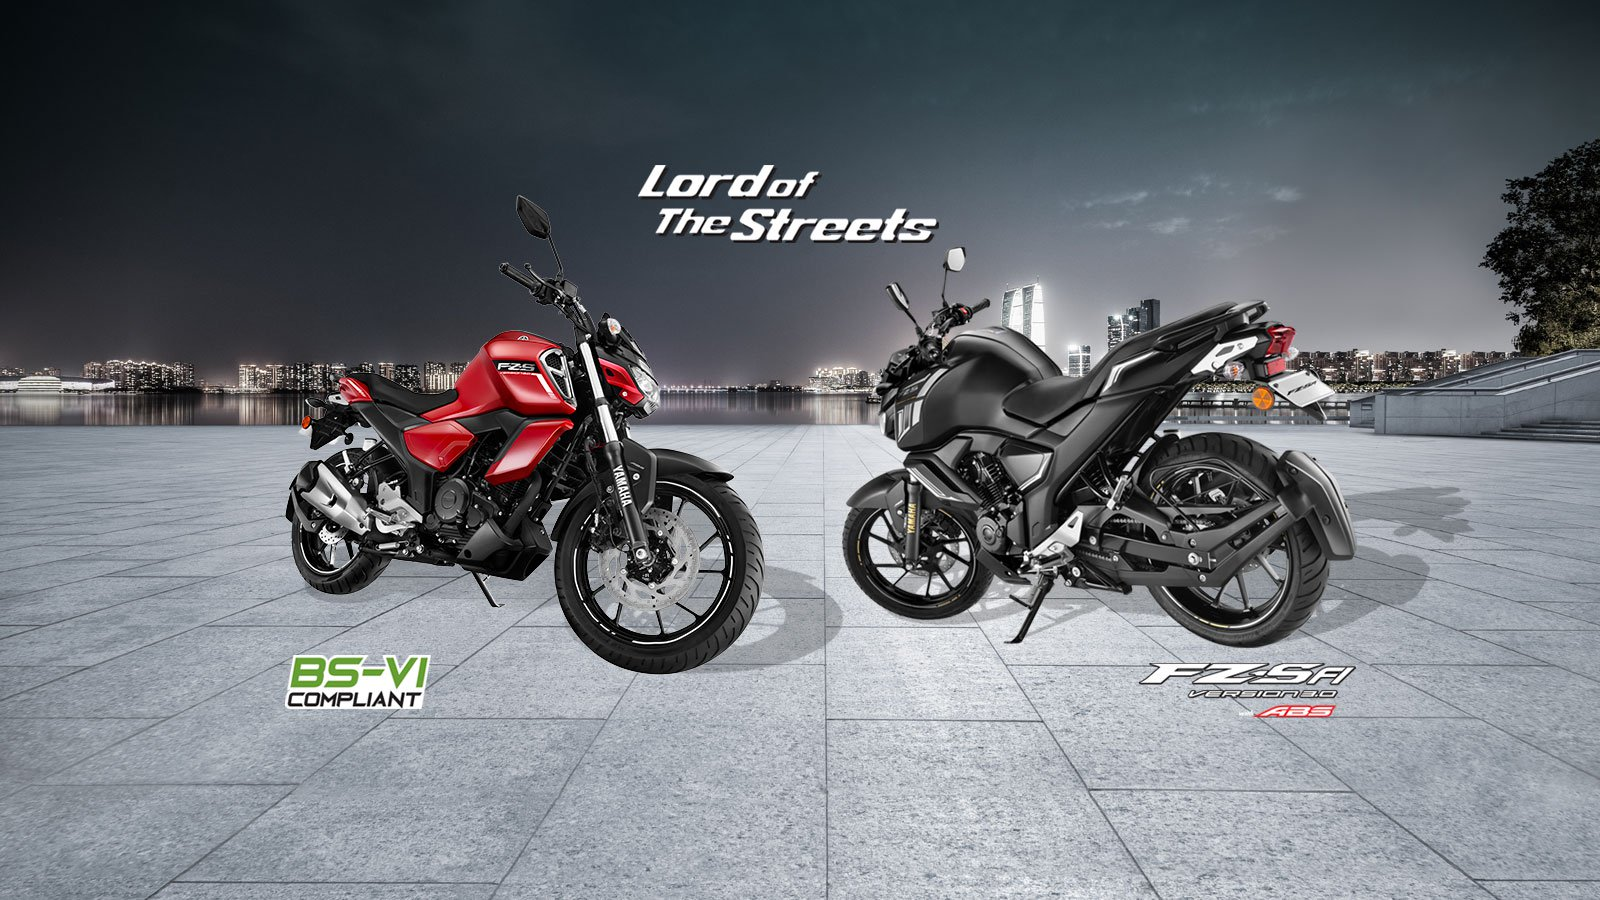 Yamaha FZ-Fi V3 and FZS-Fi V3 - Comparison, Features, Looks, Specifications and more